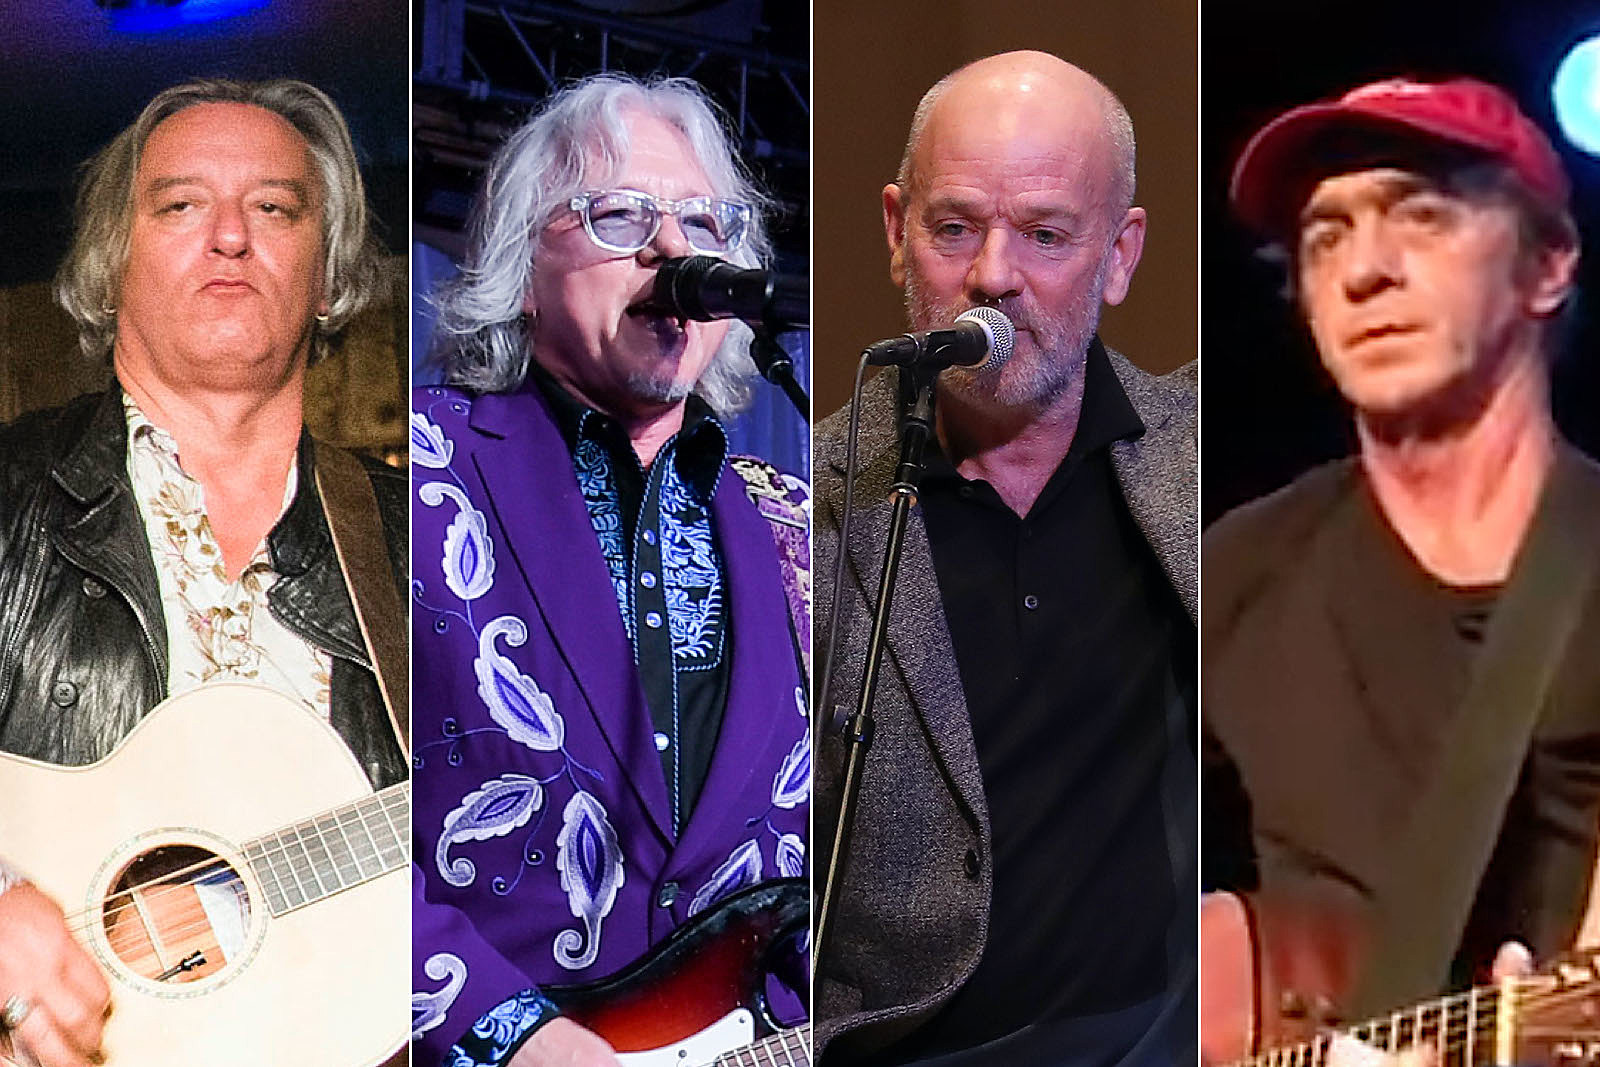 R.E.M.: 10 Years After the Breakup